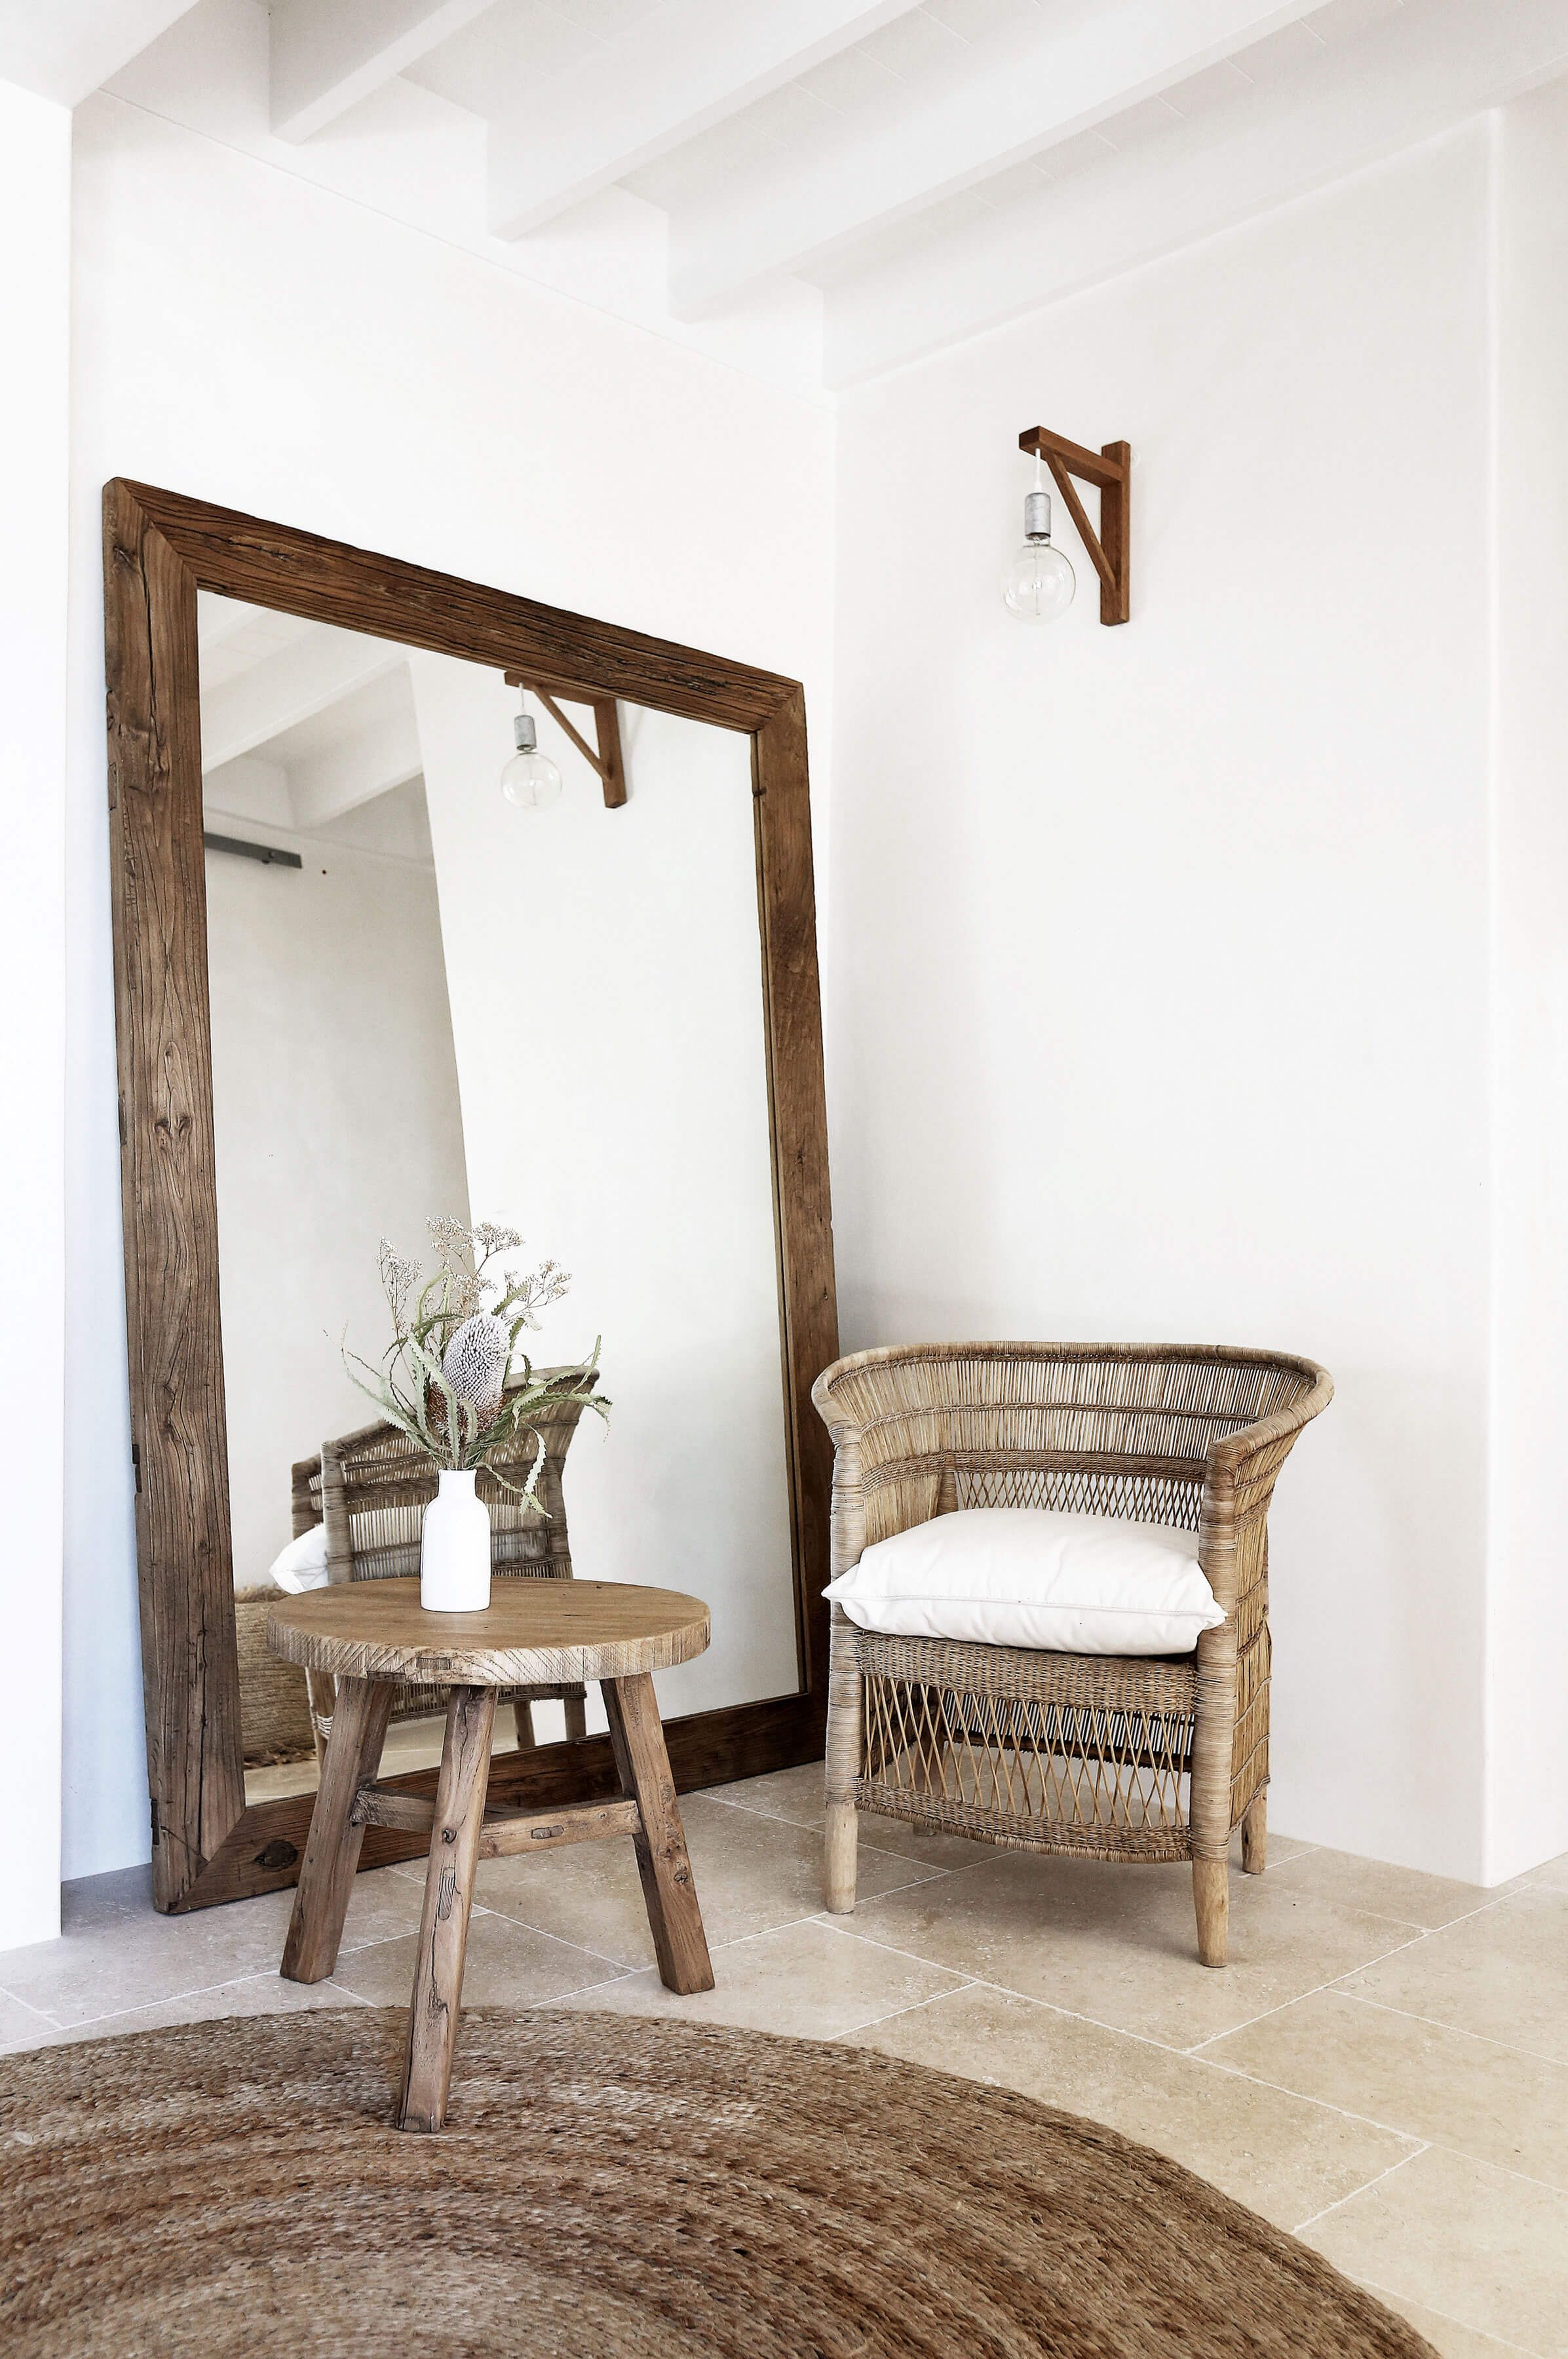 Malawi African Chair | Pinterest | Villa design, Design products and ...